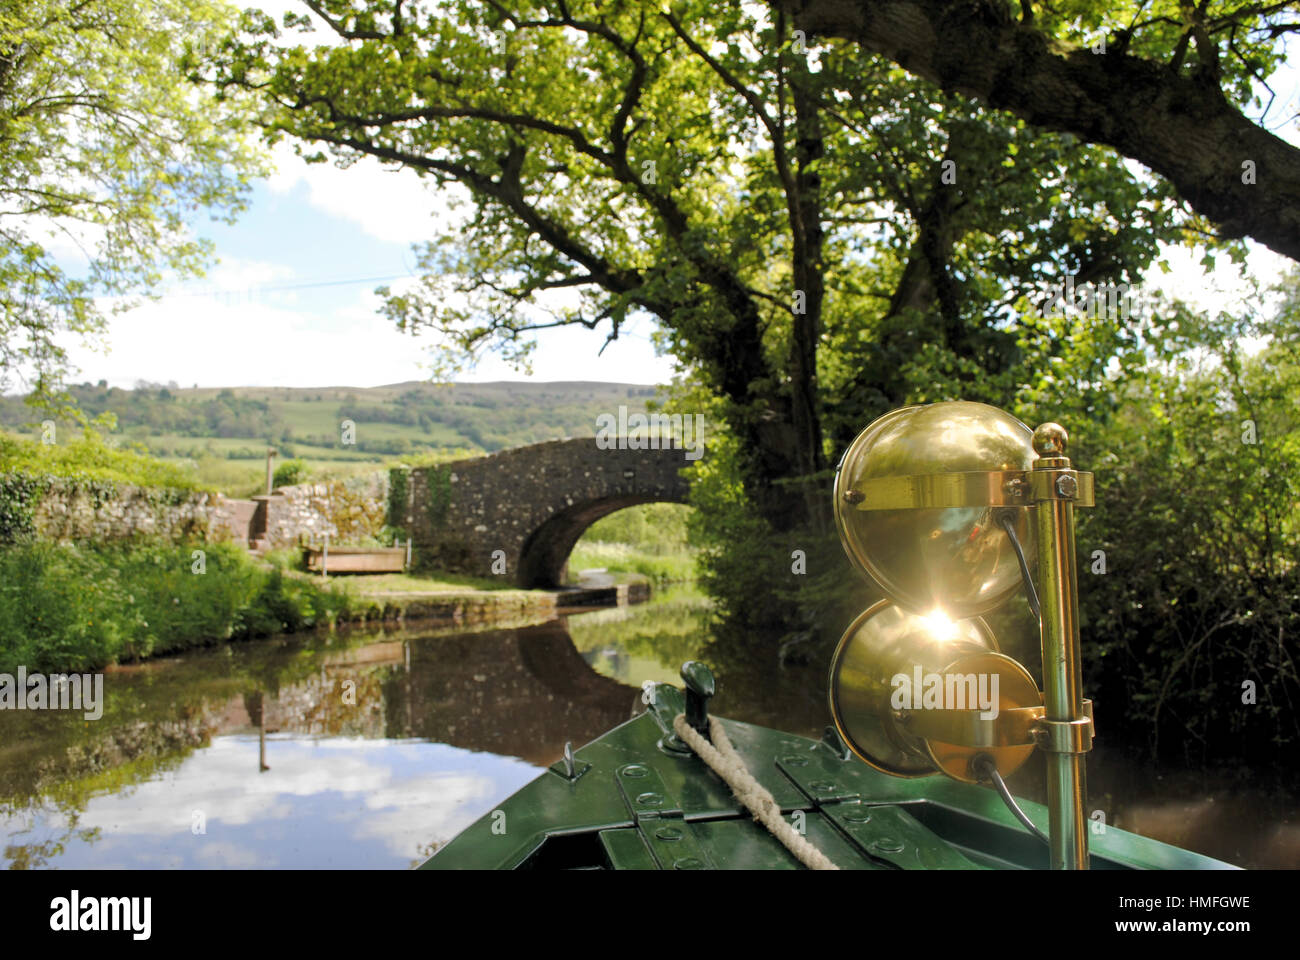 Sunlight shines on the brass headlamps of a canal barge in Wales. - Stock Image